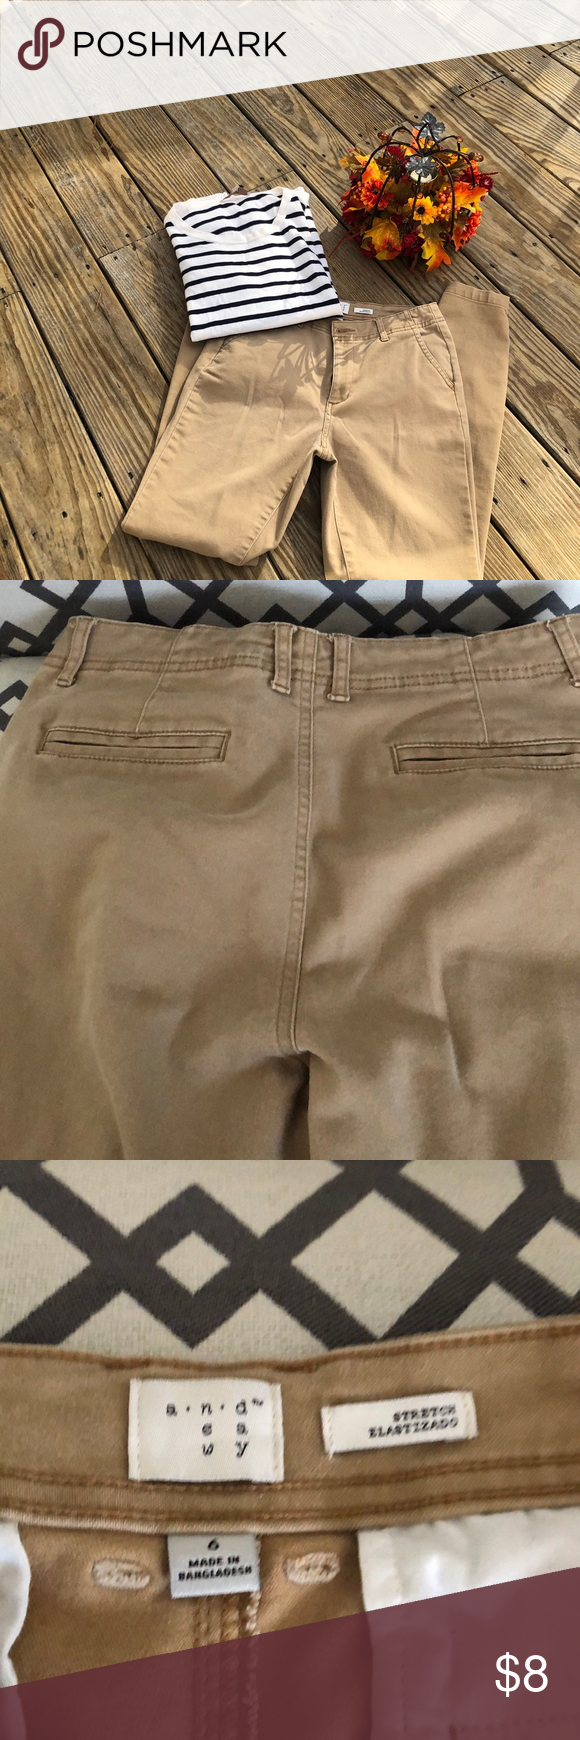 Gently used khakis from Target Khaki, Uniform pants